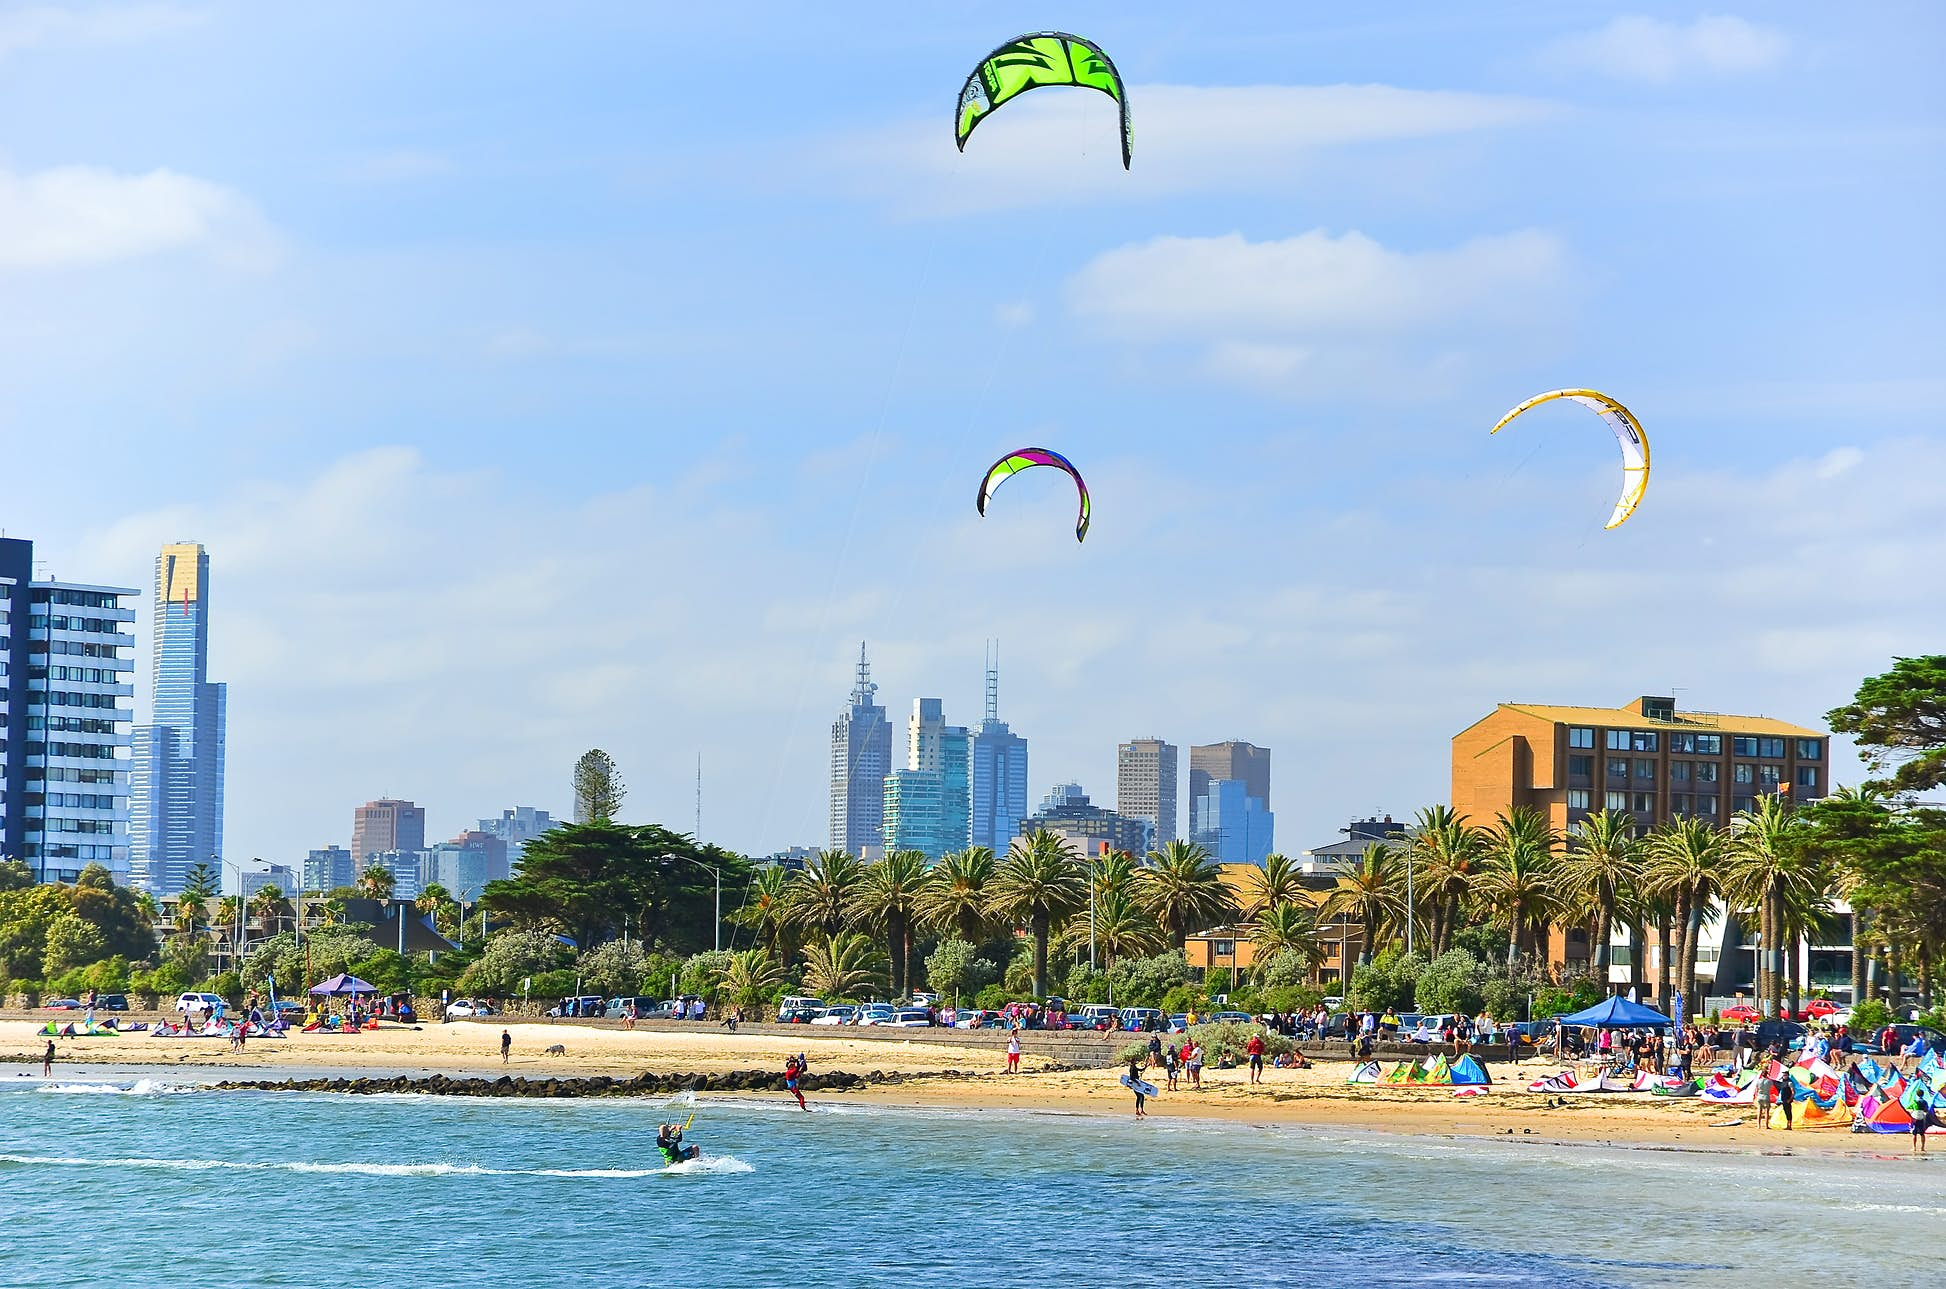 Popular holiday hotspots like St Kilda Beach in Melbourne may only see domestic tourists this year ©Javen/Shutterstock